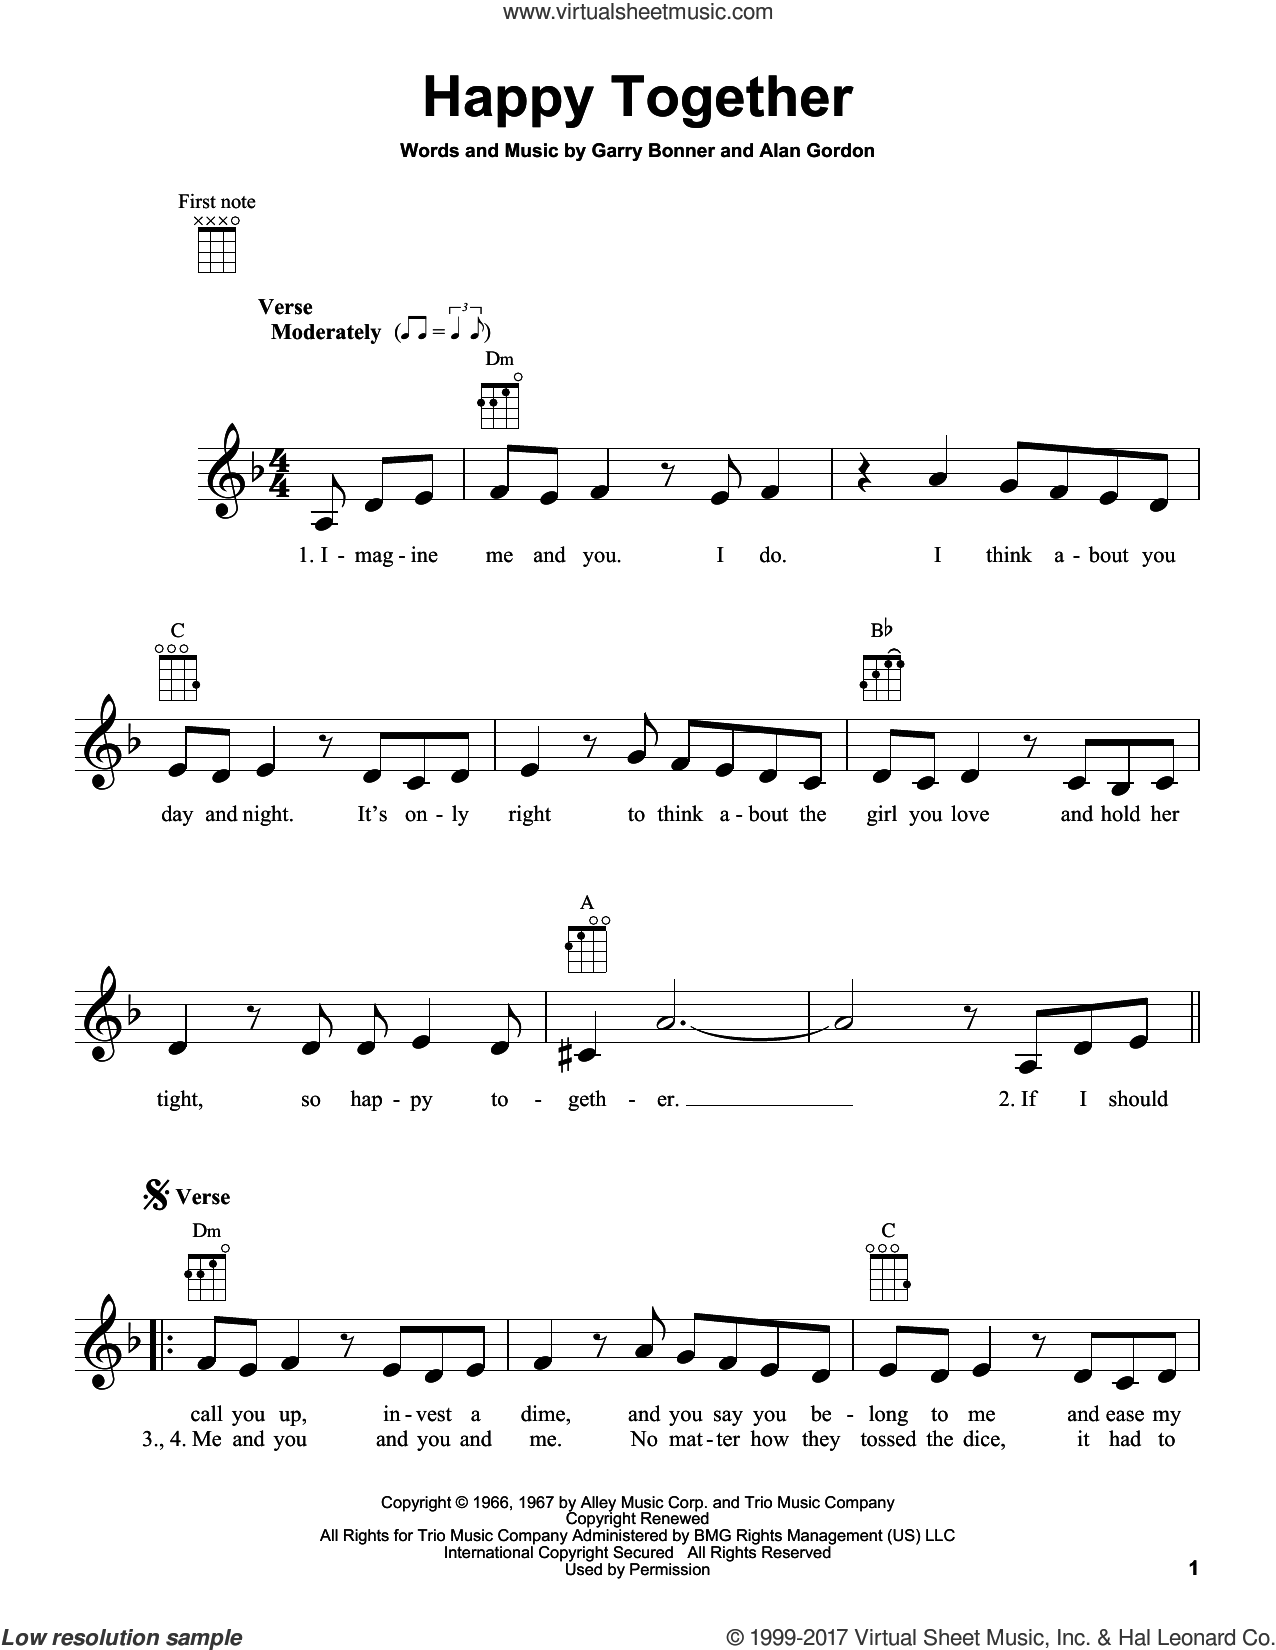 Happy Together sheet music for ukulele by The Turtles, Alan Gordon and Garry Bonner, intermediate skill level